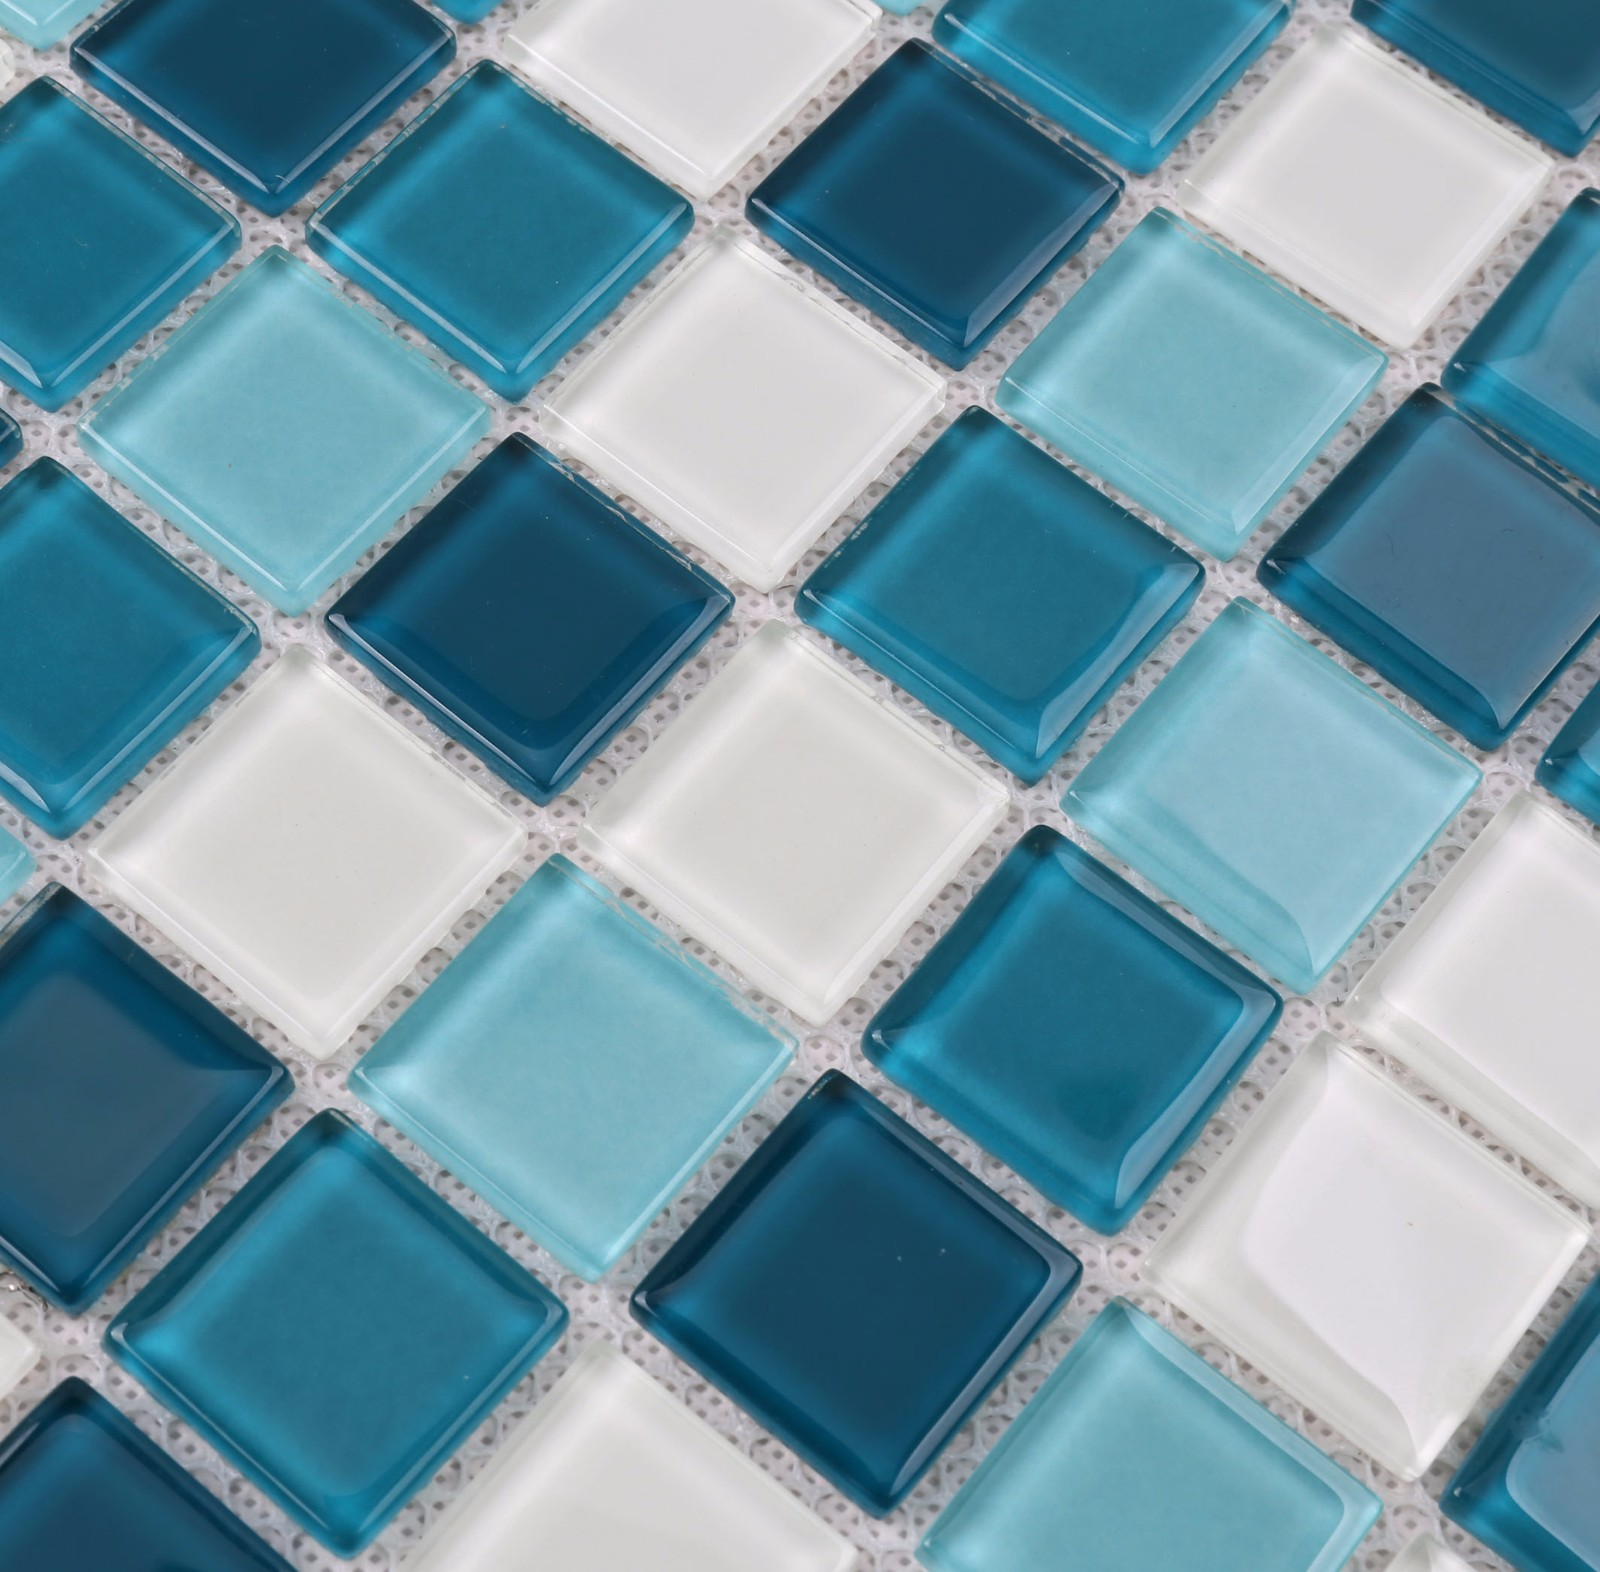 Heng Xing waterline glass pool tile supplier for fountain-4